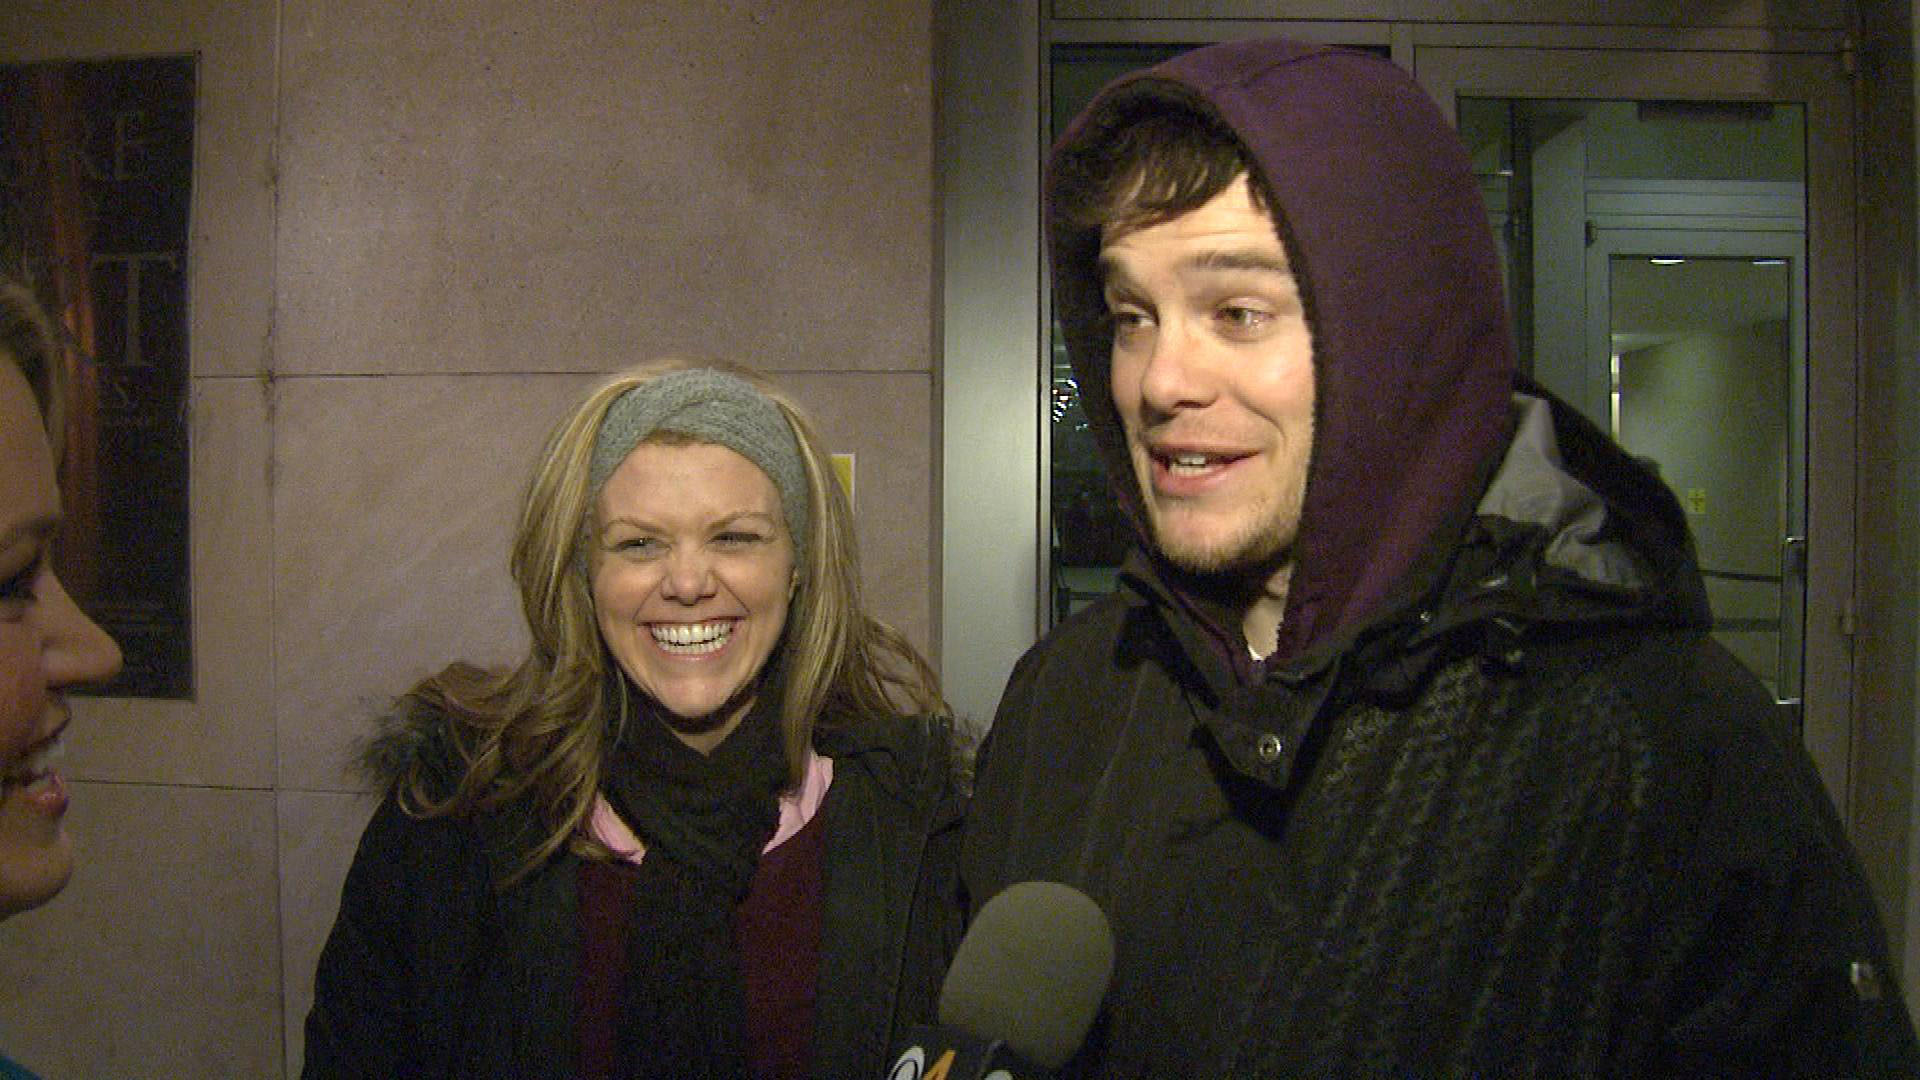 Elise Barber and her fiance Ryan (credit: CBS)